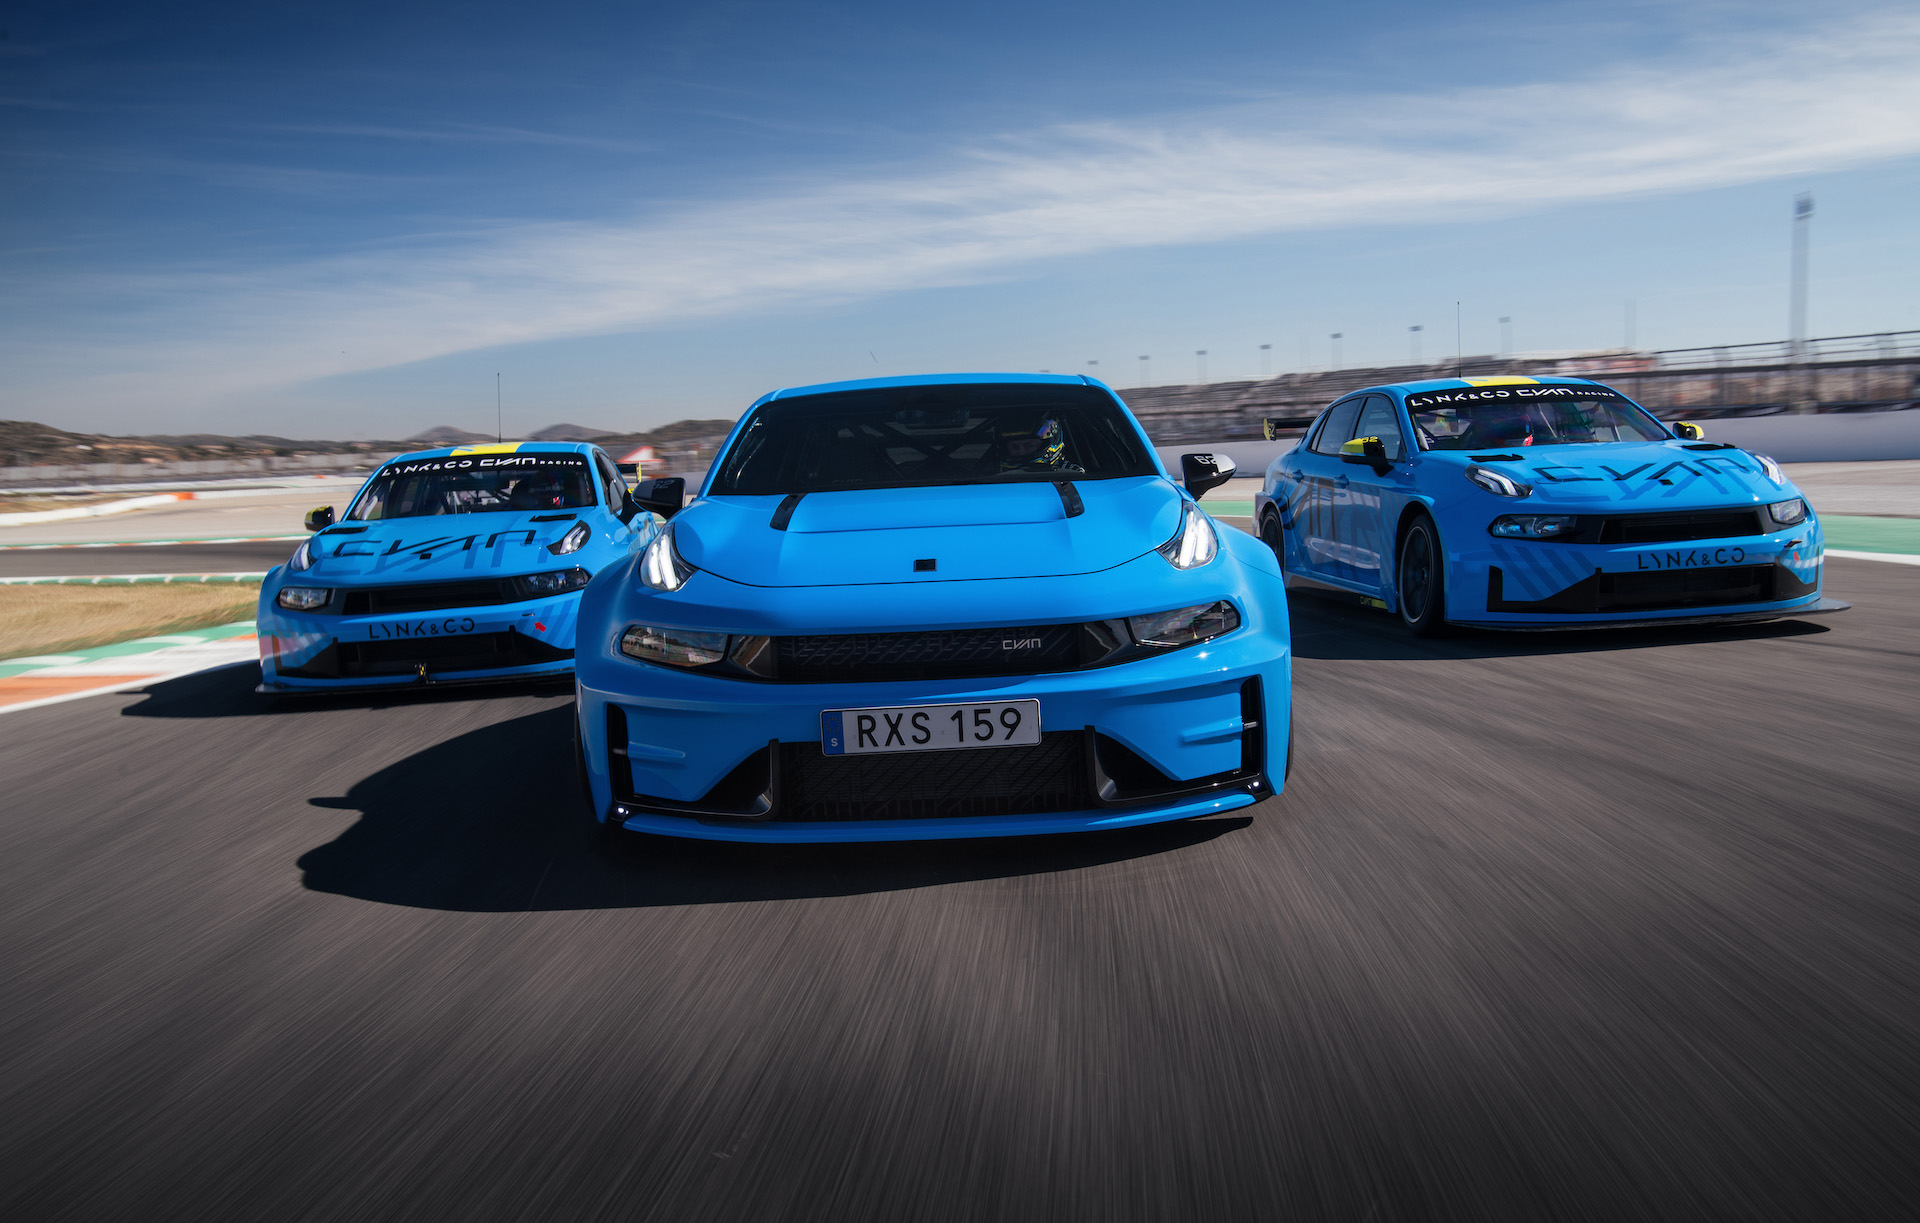 The Cyan Racing team just finished testing the prototype version of the Chinese-designed Lynk & Co 03 Cyan sedan/saloon